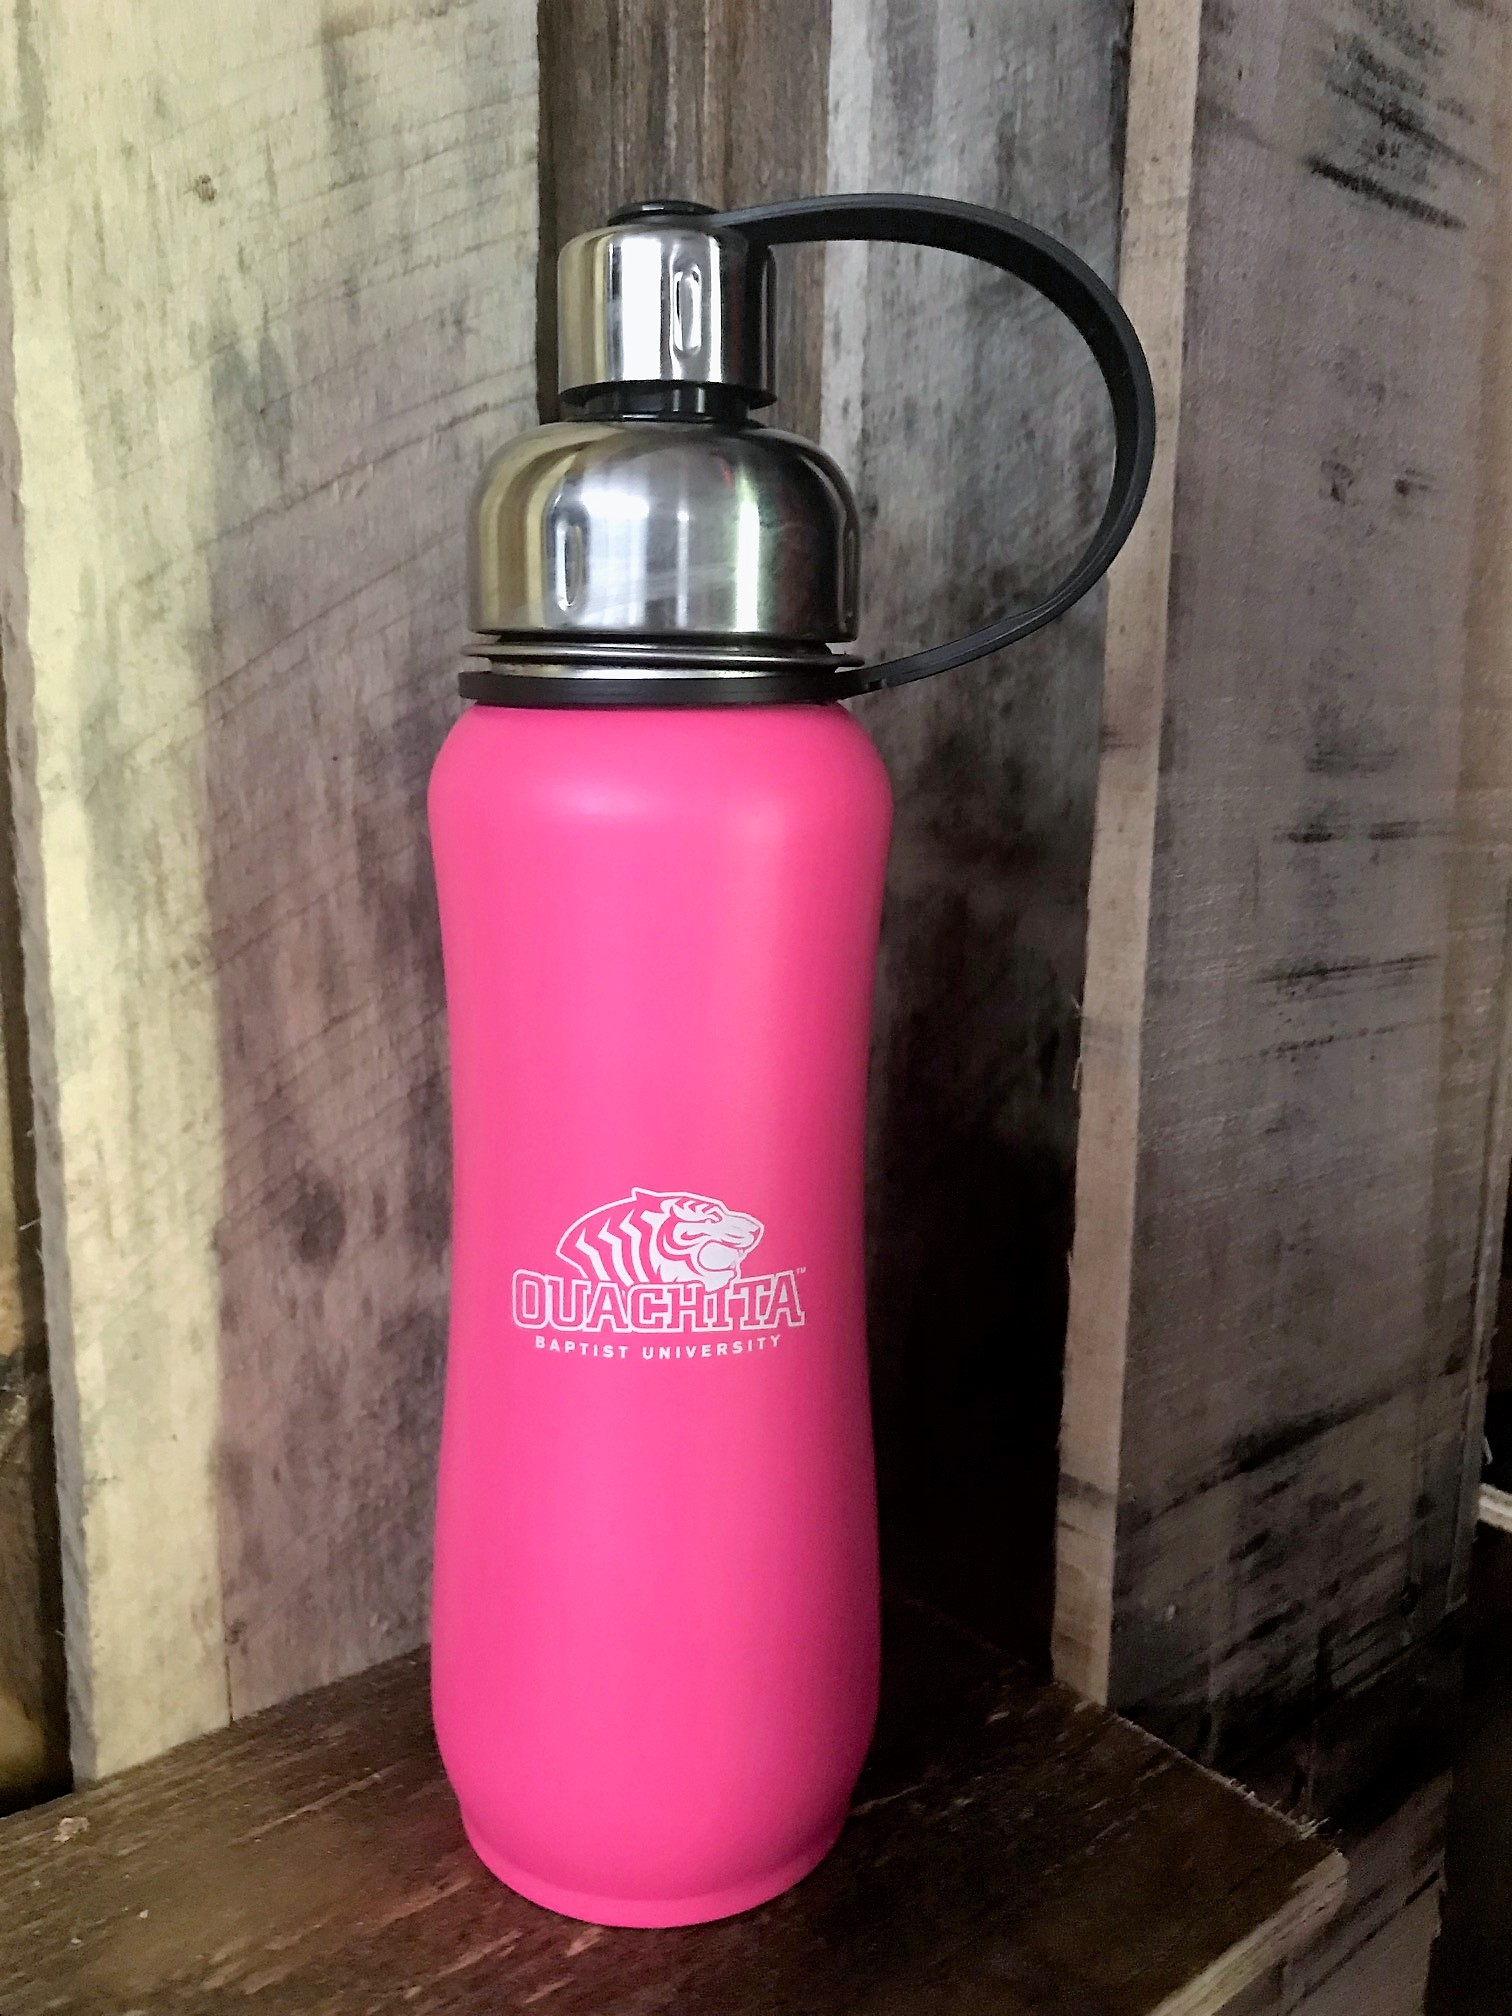 OUACHITA BAPTIST UNIVERSITY THINKSPORT 17OZ INSULATED BOTTLE